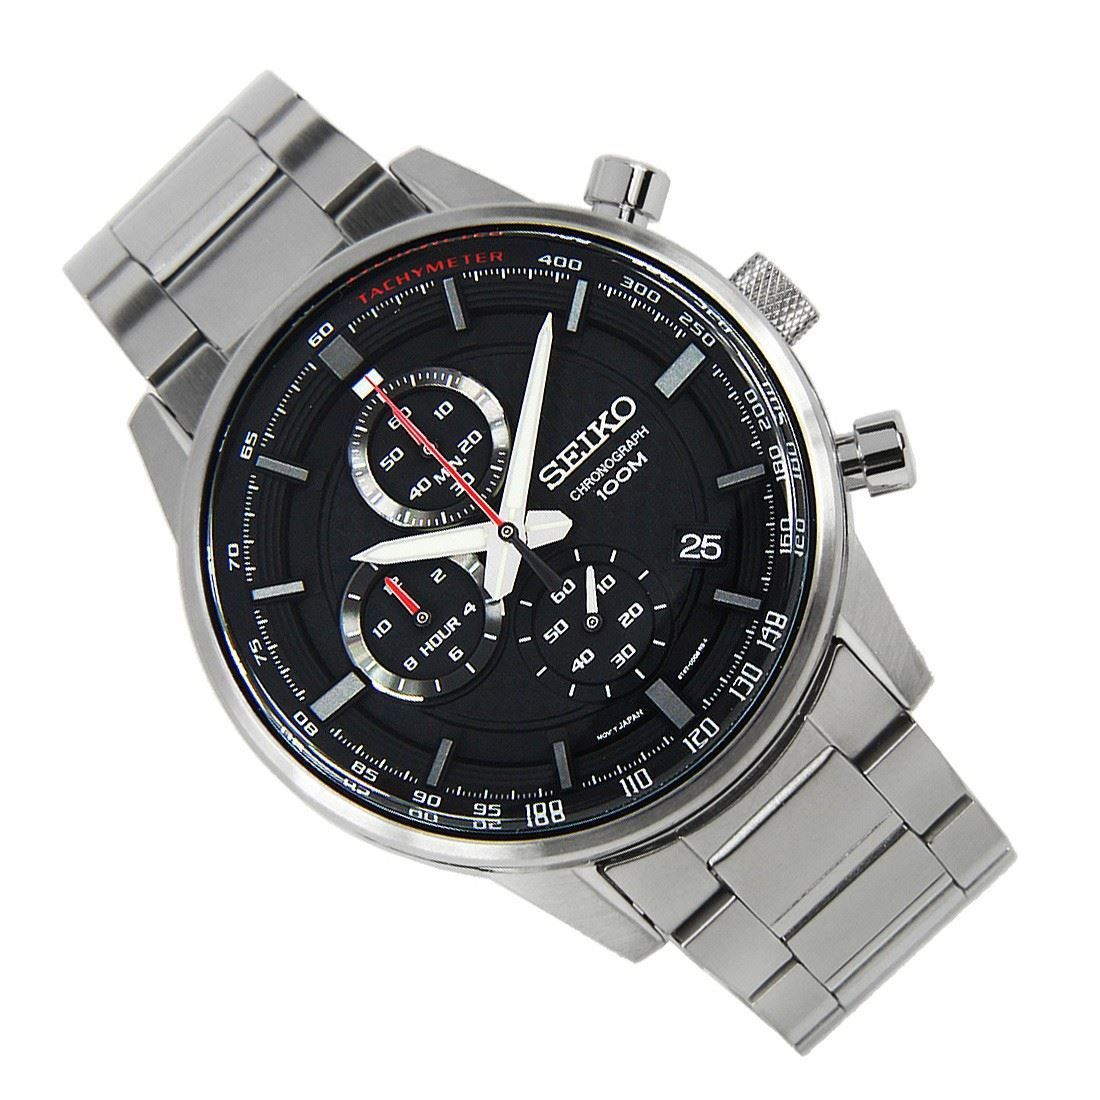 Orient Semi Skeleton Automatic Ra Ar0005y10b Mens Watch Citizen Nh8388 81e Ssb313p1 Ssb313p Ssb313 Seiko Chronograph